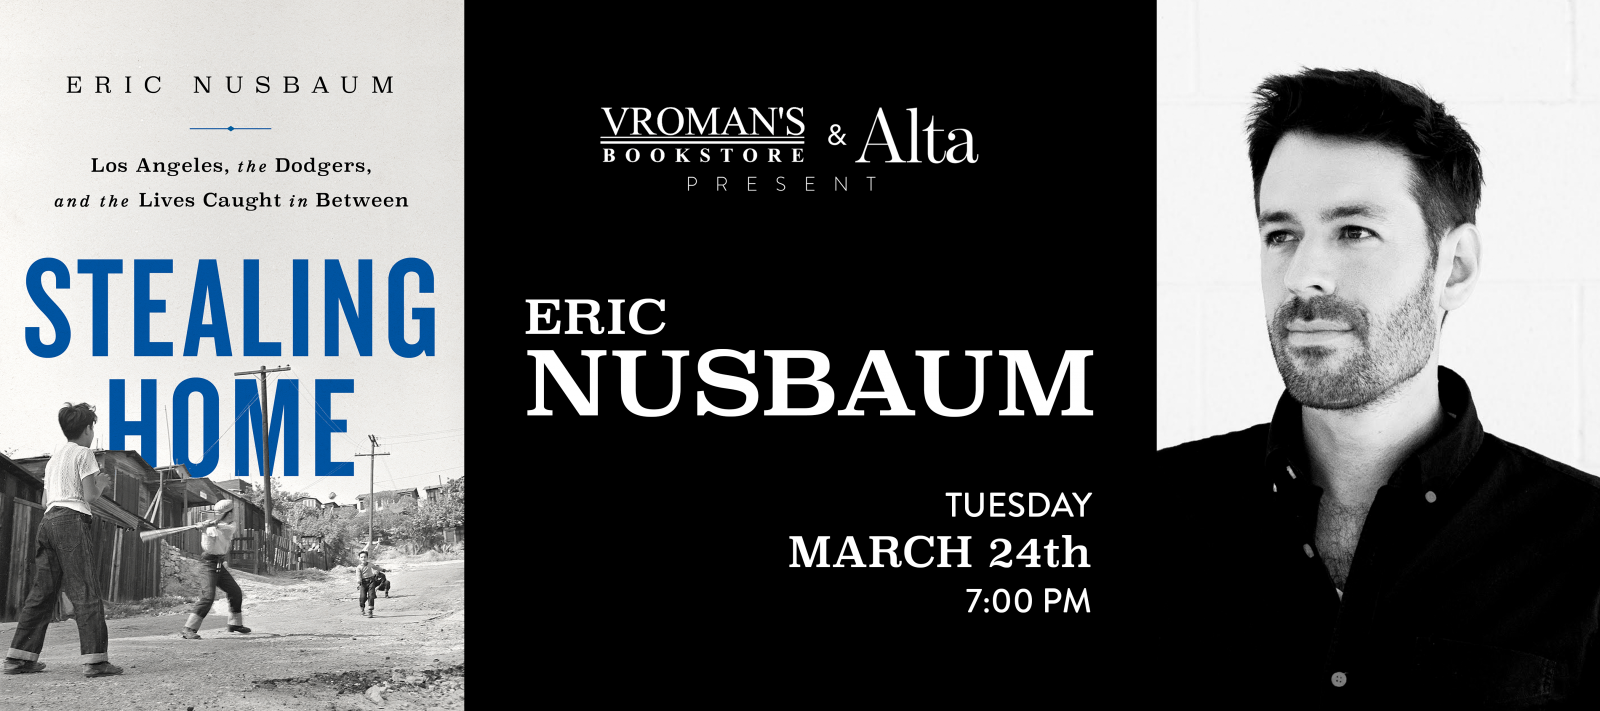 Eric Nusbaum book signing on Tuesday, March 24, at 7pm